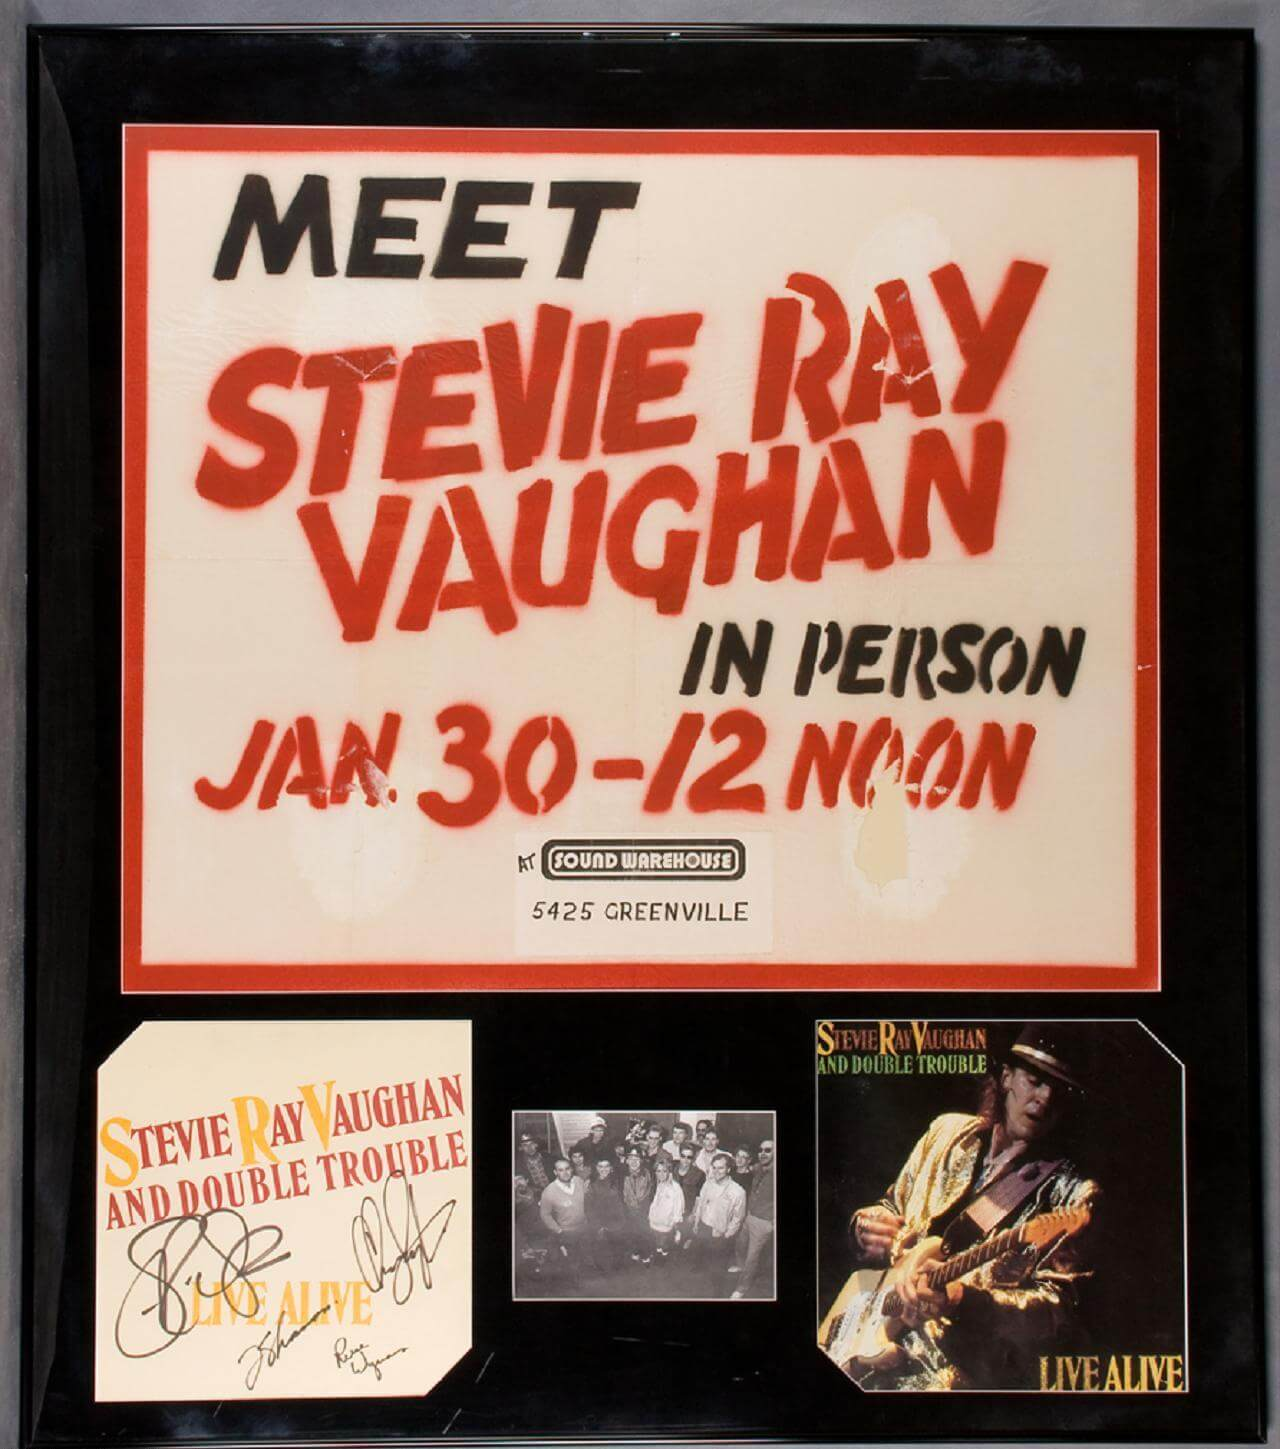 Steve Ray Vaughan Signed Photo Display - COA PSA/DNA